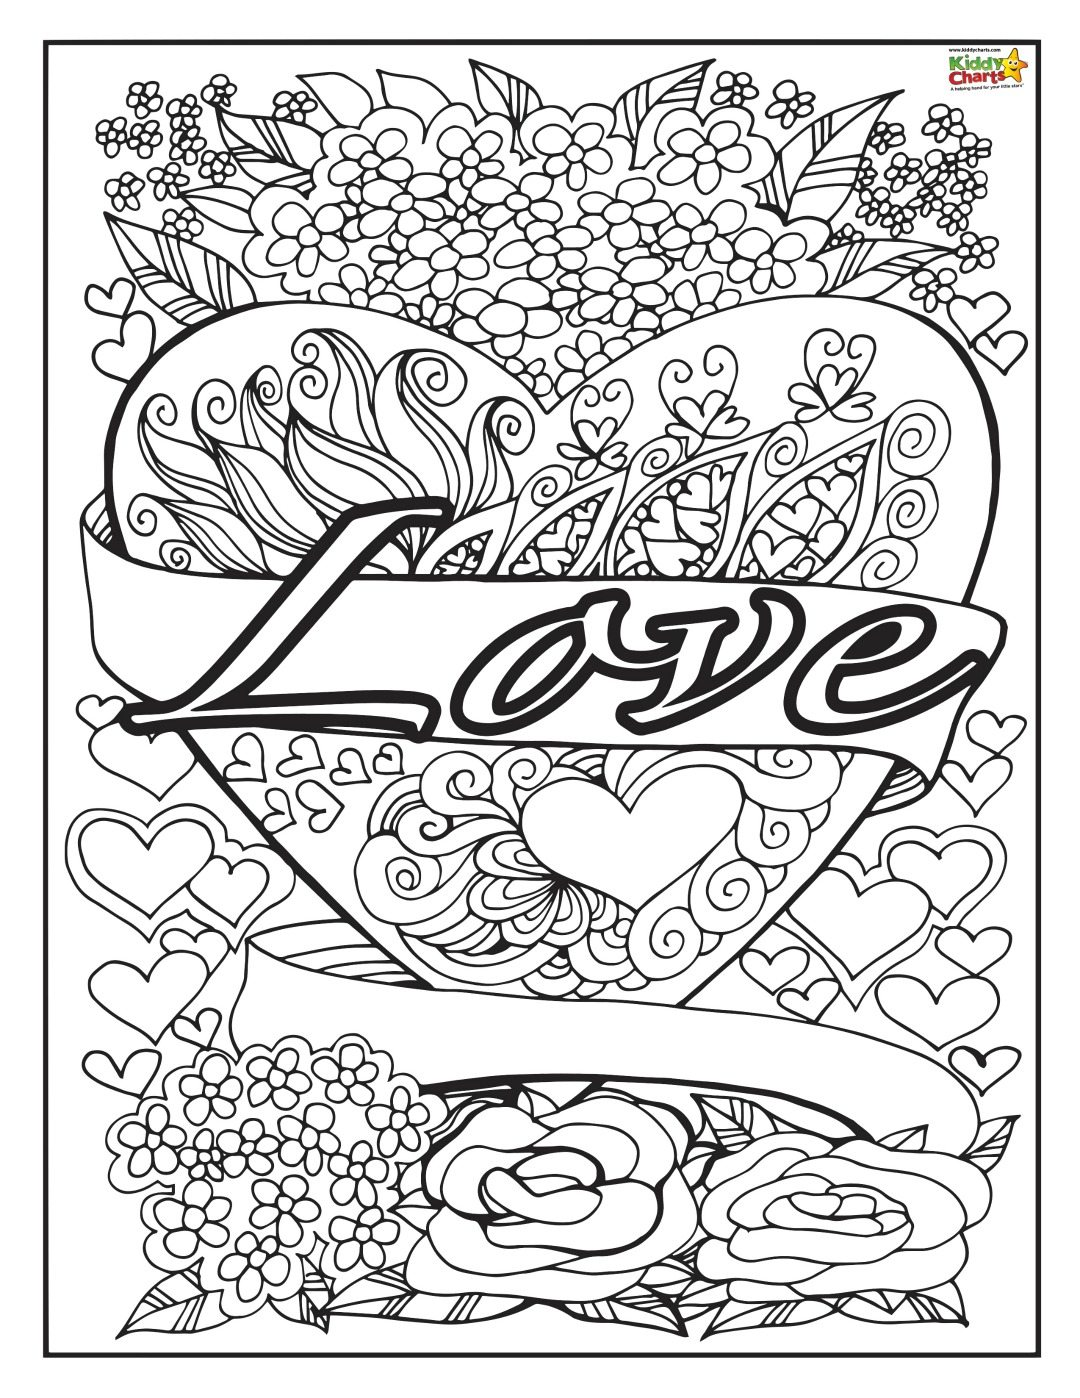 Some gorgeous love coloring pages for adults and kids, as part of our Kindness series of resources. Do check the other resource out on the site.